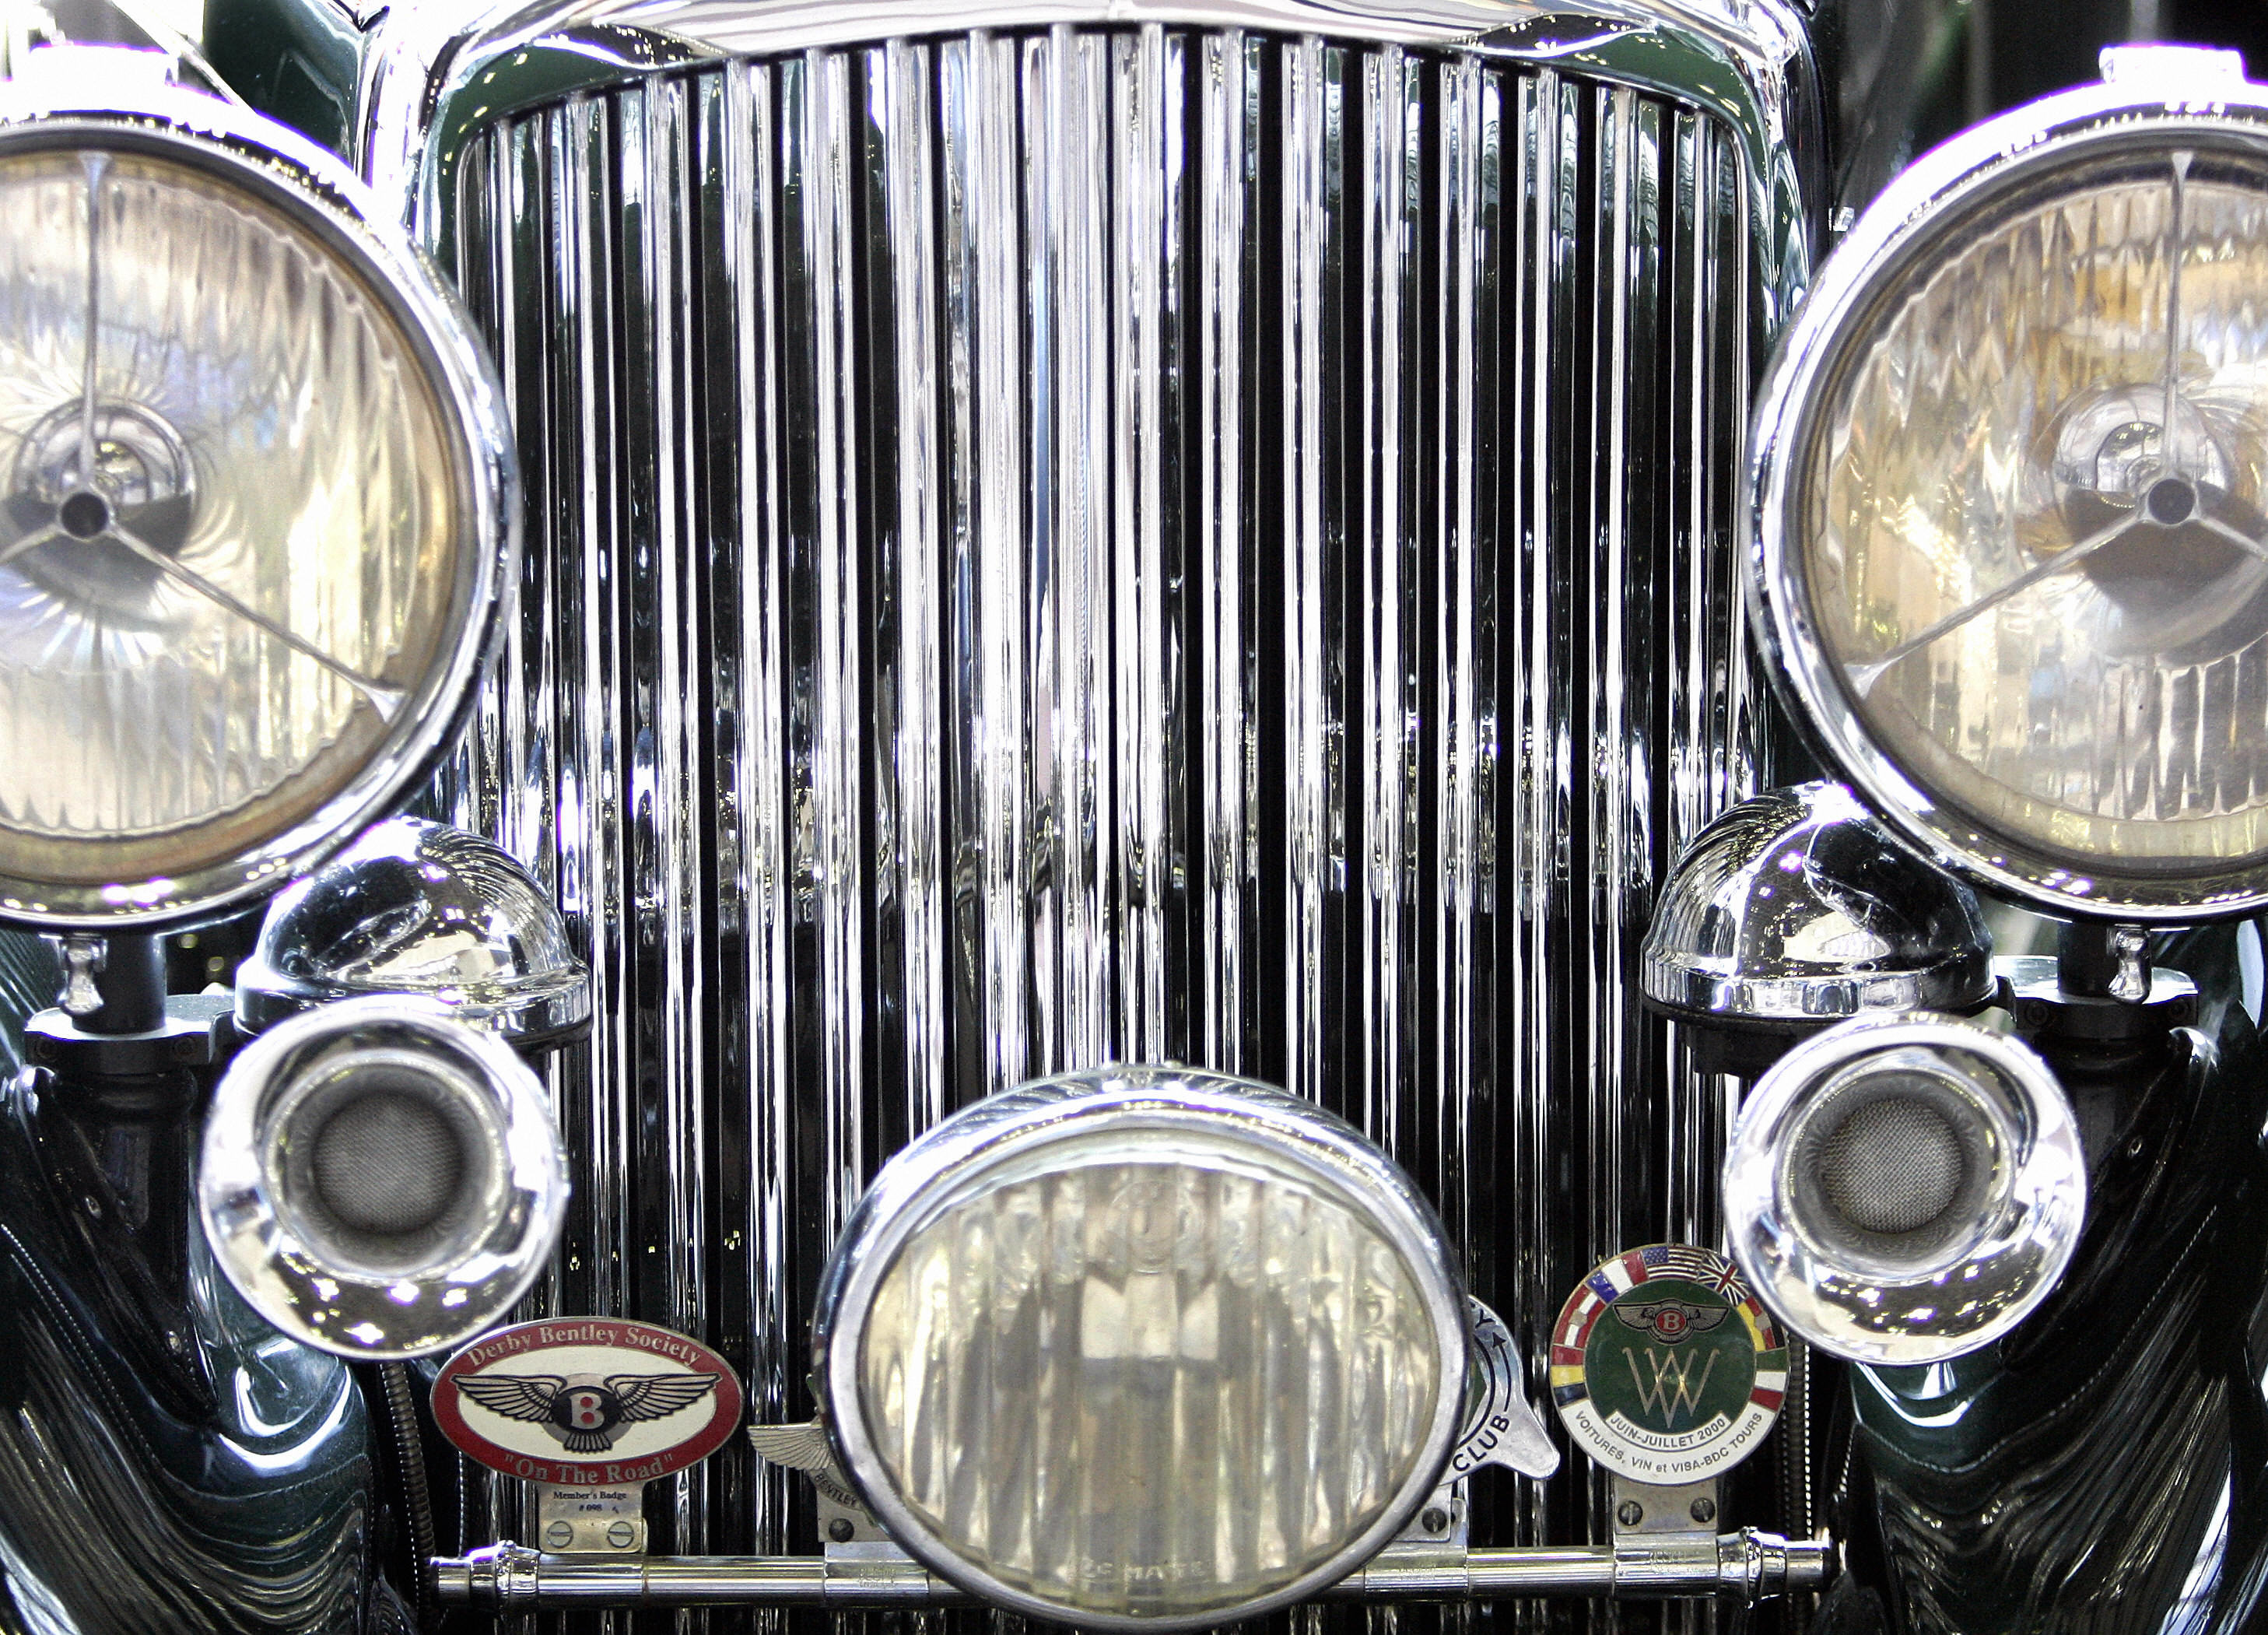 The front grill of a vintage Bentley is